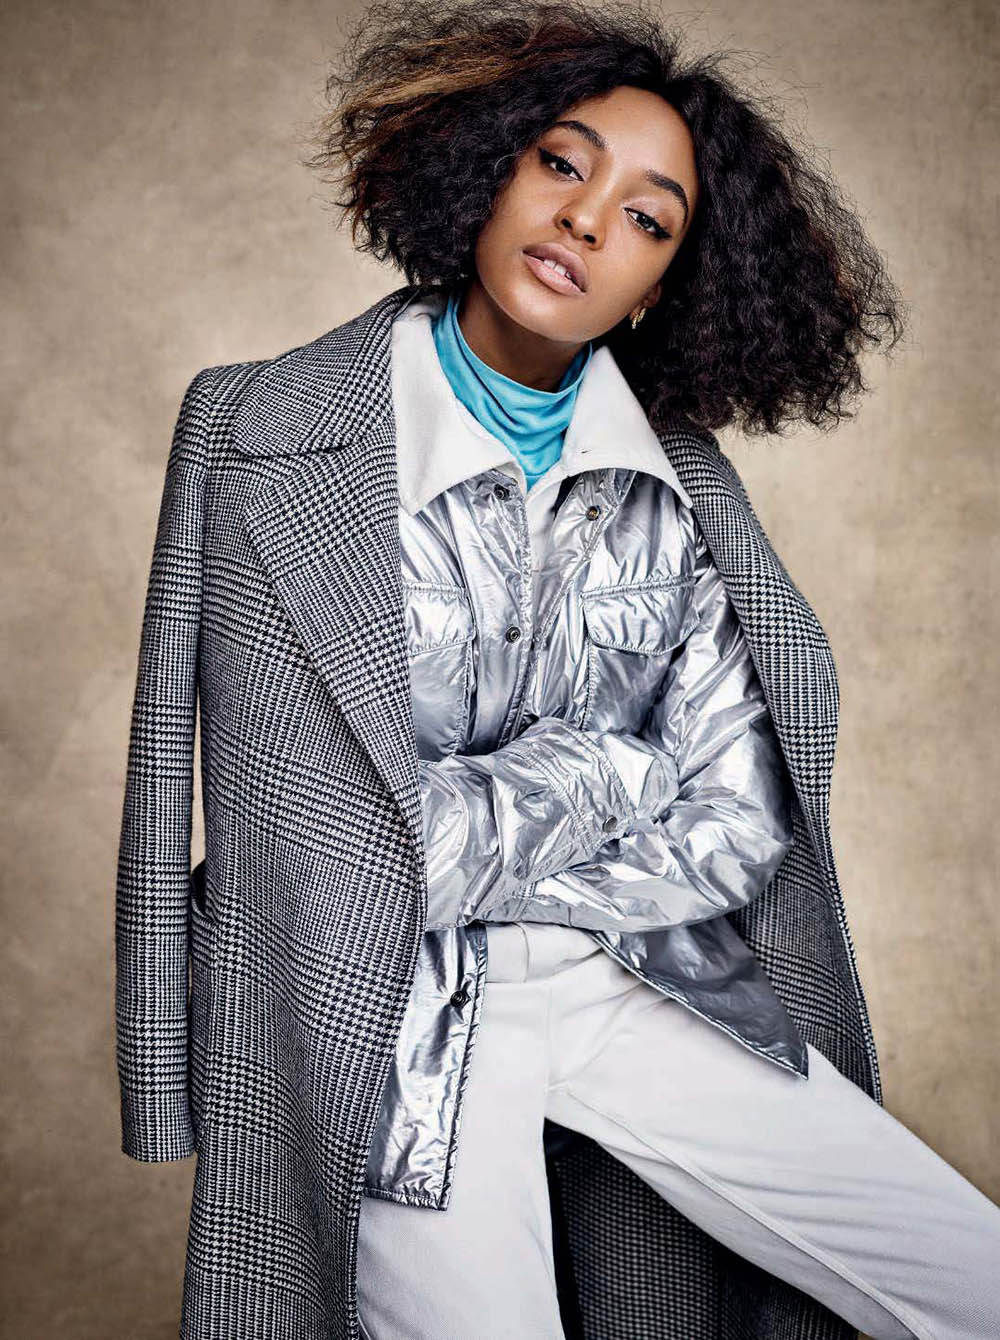 Jourdan Dunn covers Elle Italia November 2018 by Victor Demarchelier